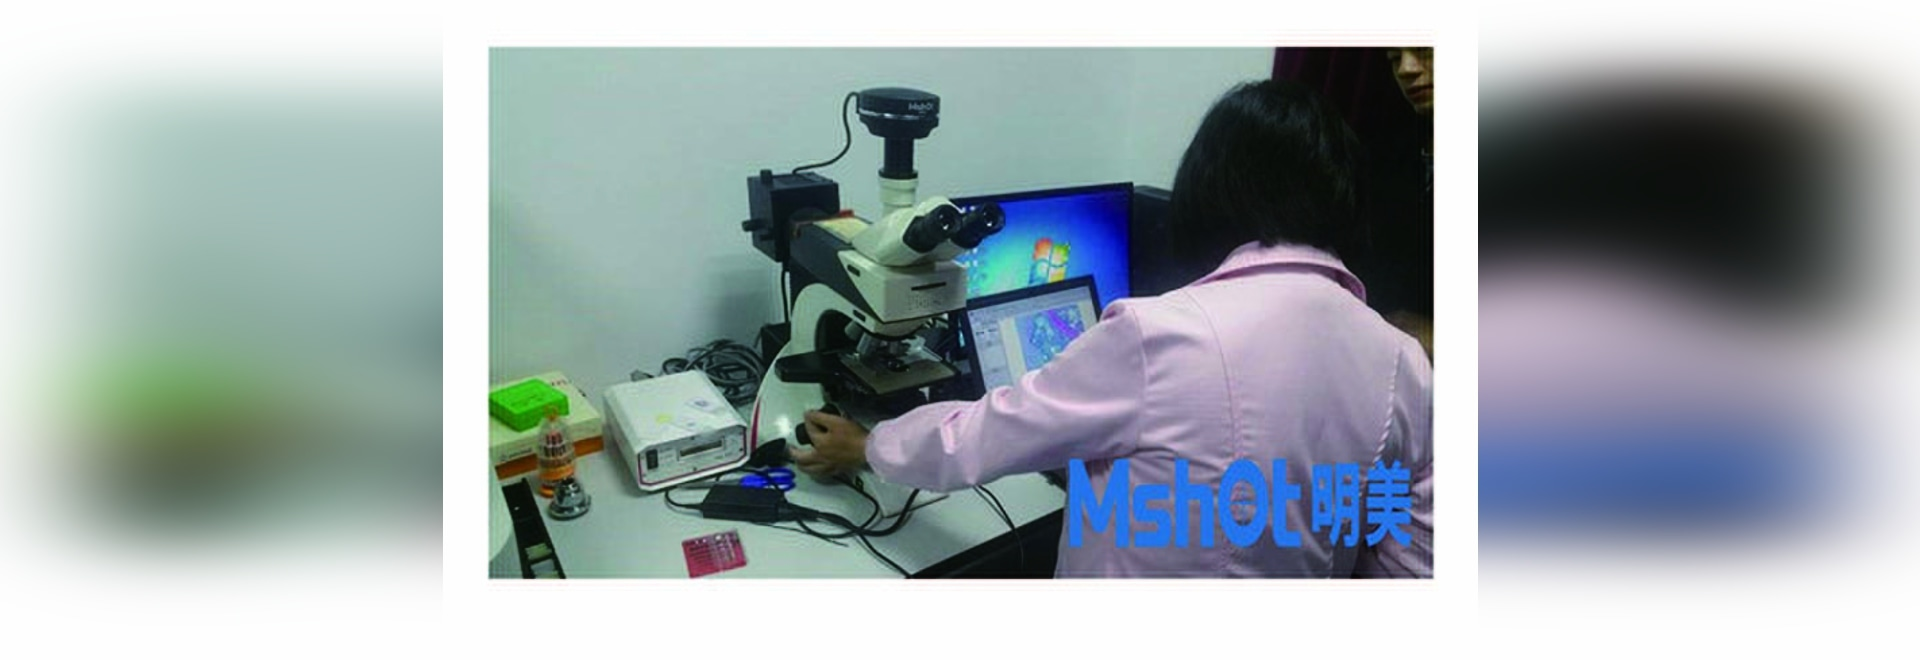 Leica Microscope With sCMOS Camera for Microscopy Imaging